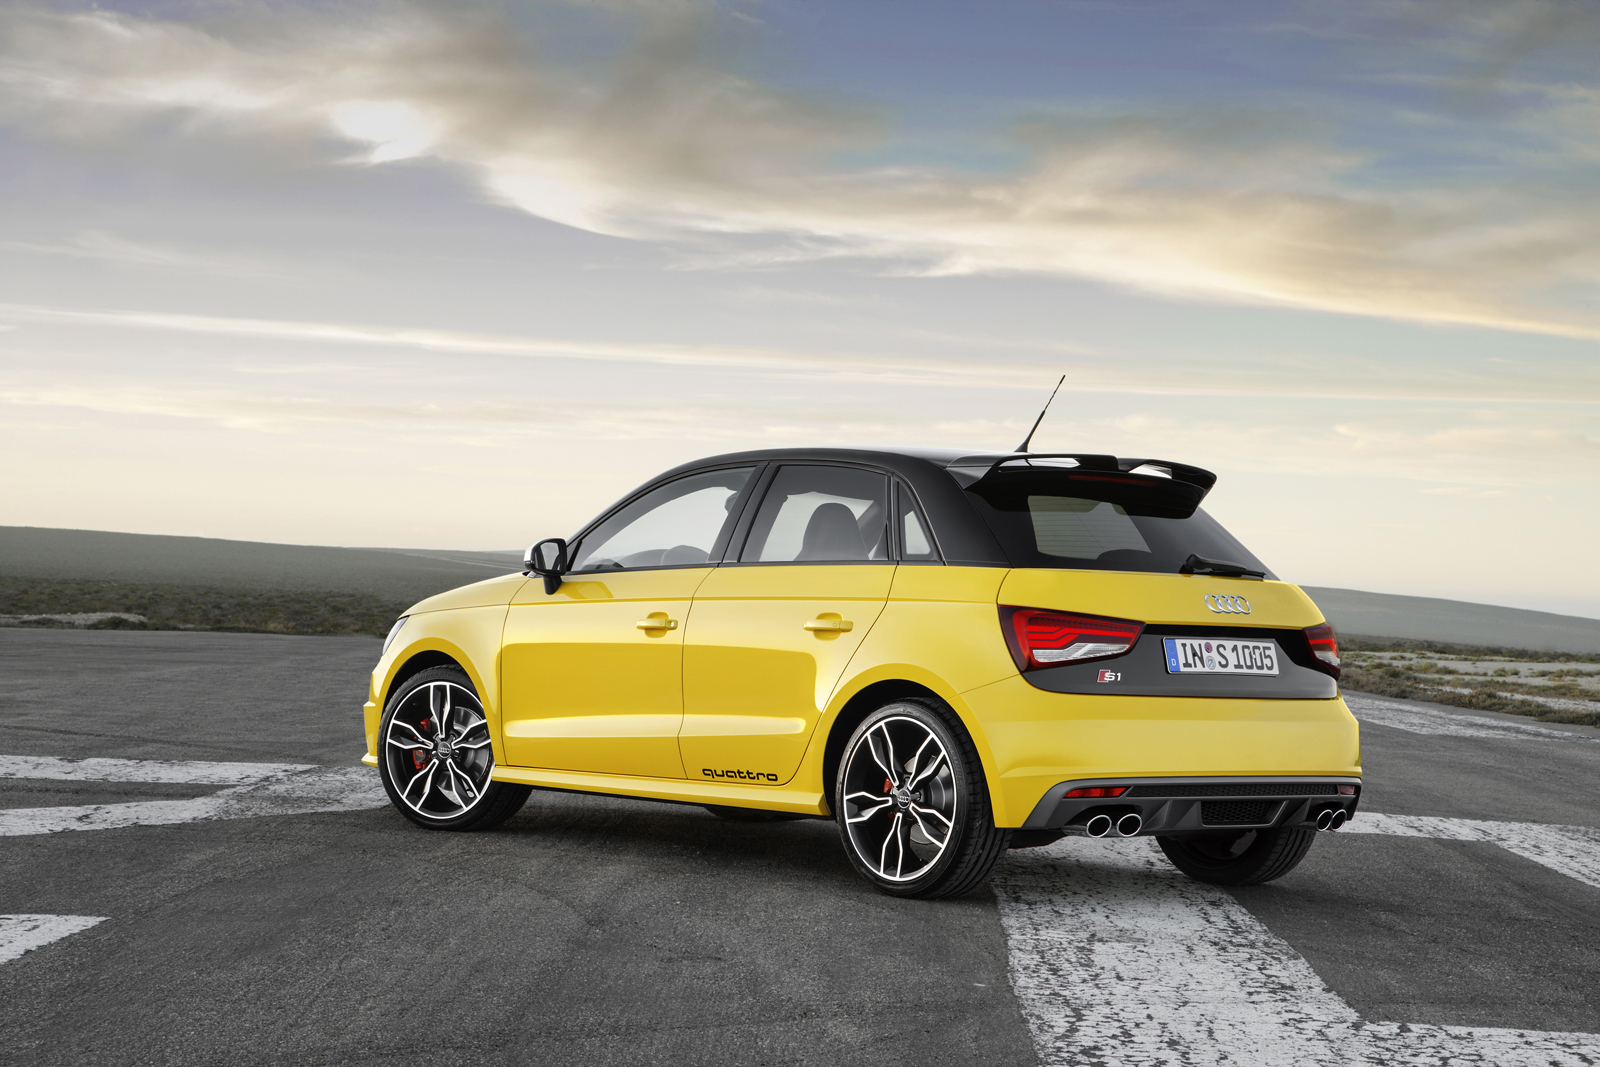 audi rs1 could be coming to 2017 geneva motor show carscoops. Black Bedroom Furniture Sets. Home Design Ideas